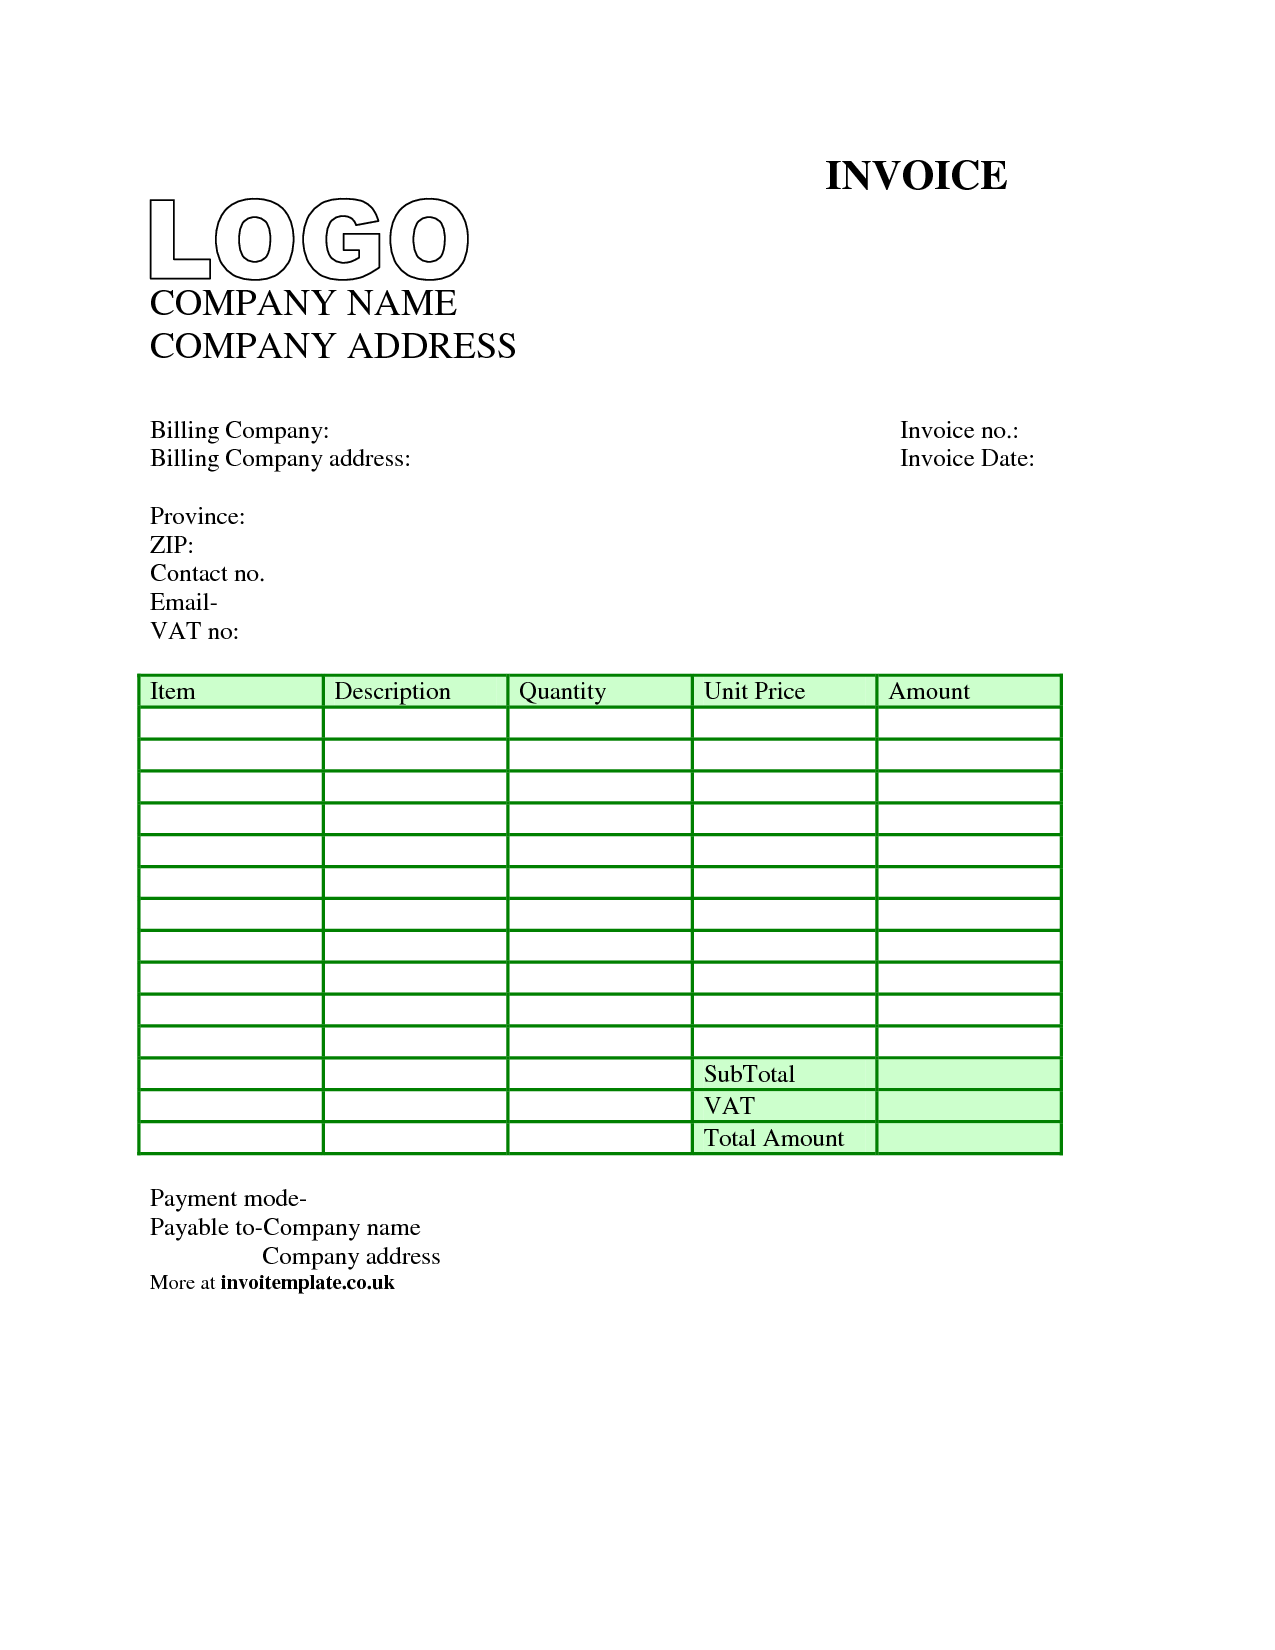 Invoice template uk word download invoice example for Excel templates free download